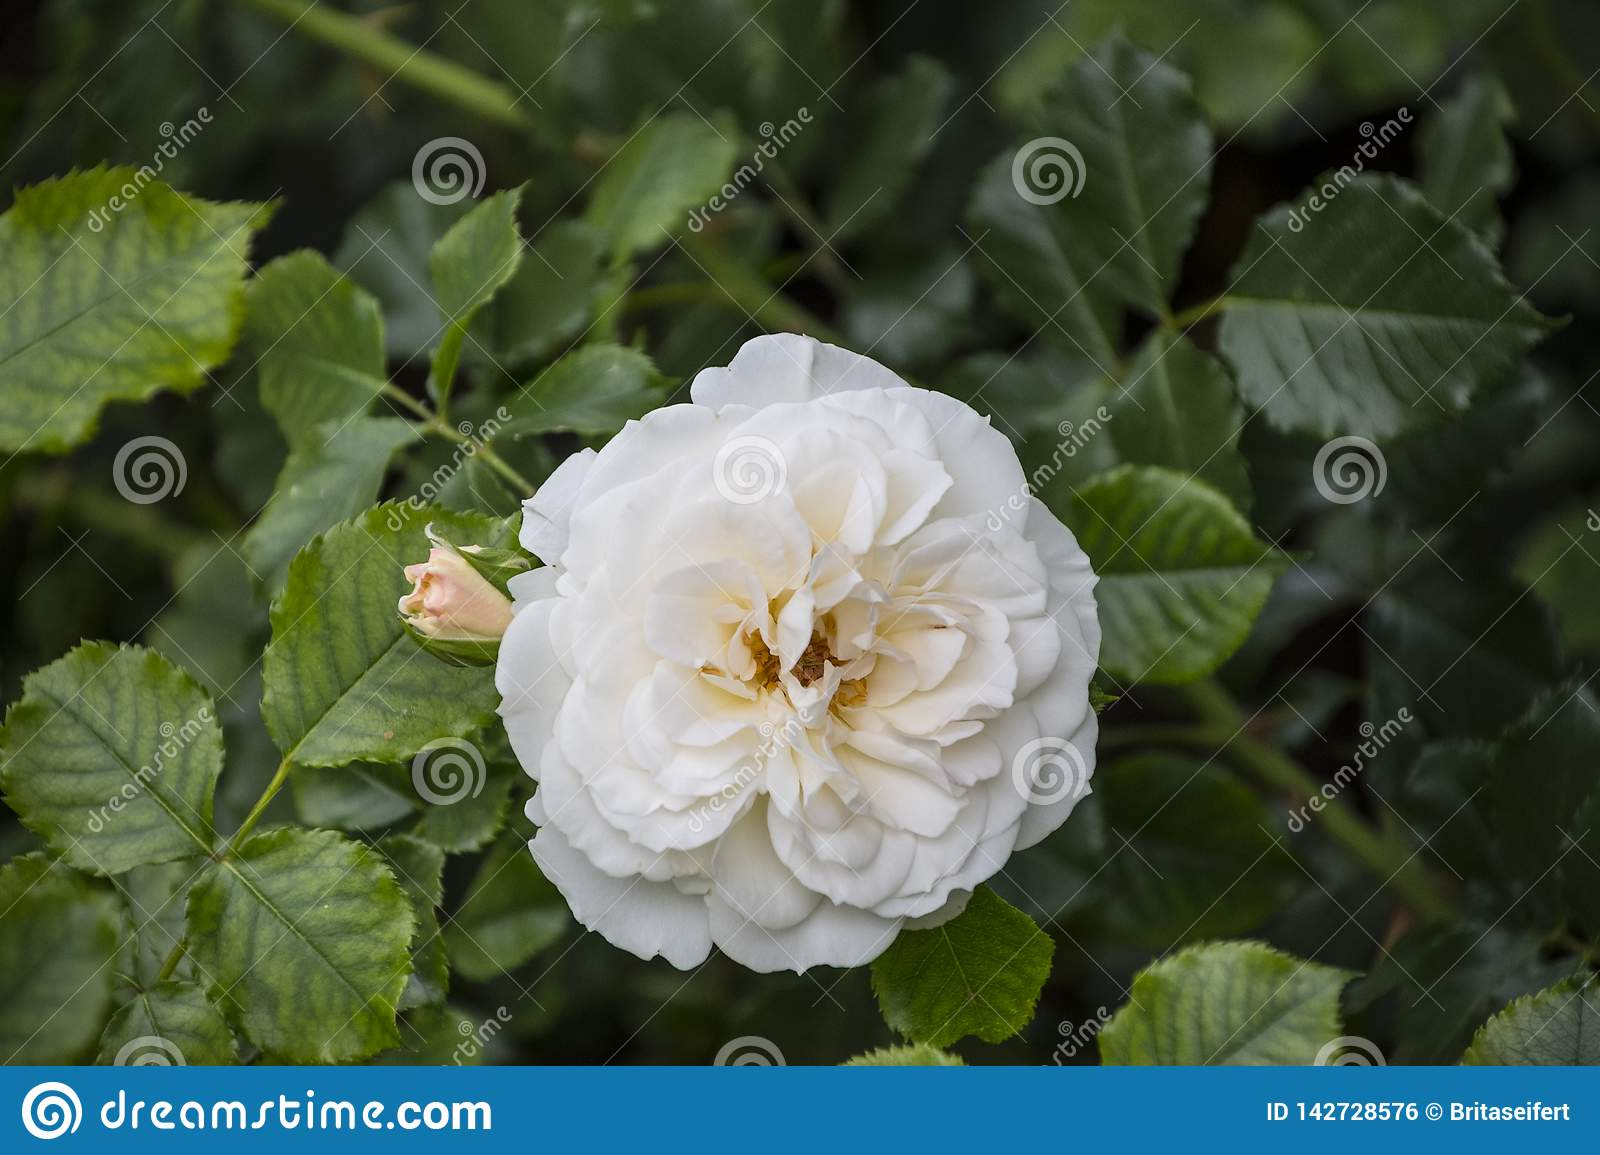 Rose flower closeup. Shallow depth of field. Spring flower of white rose royalty free stock image